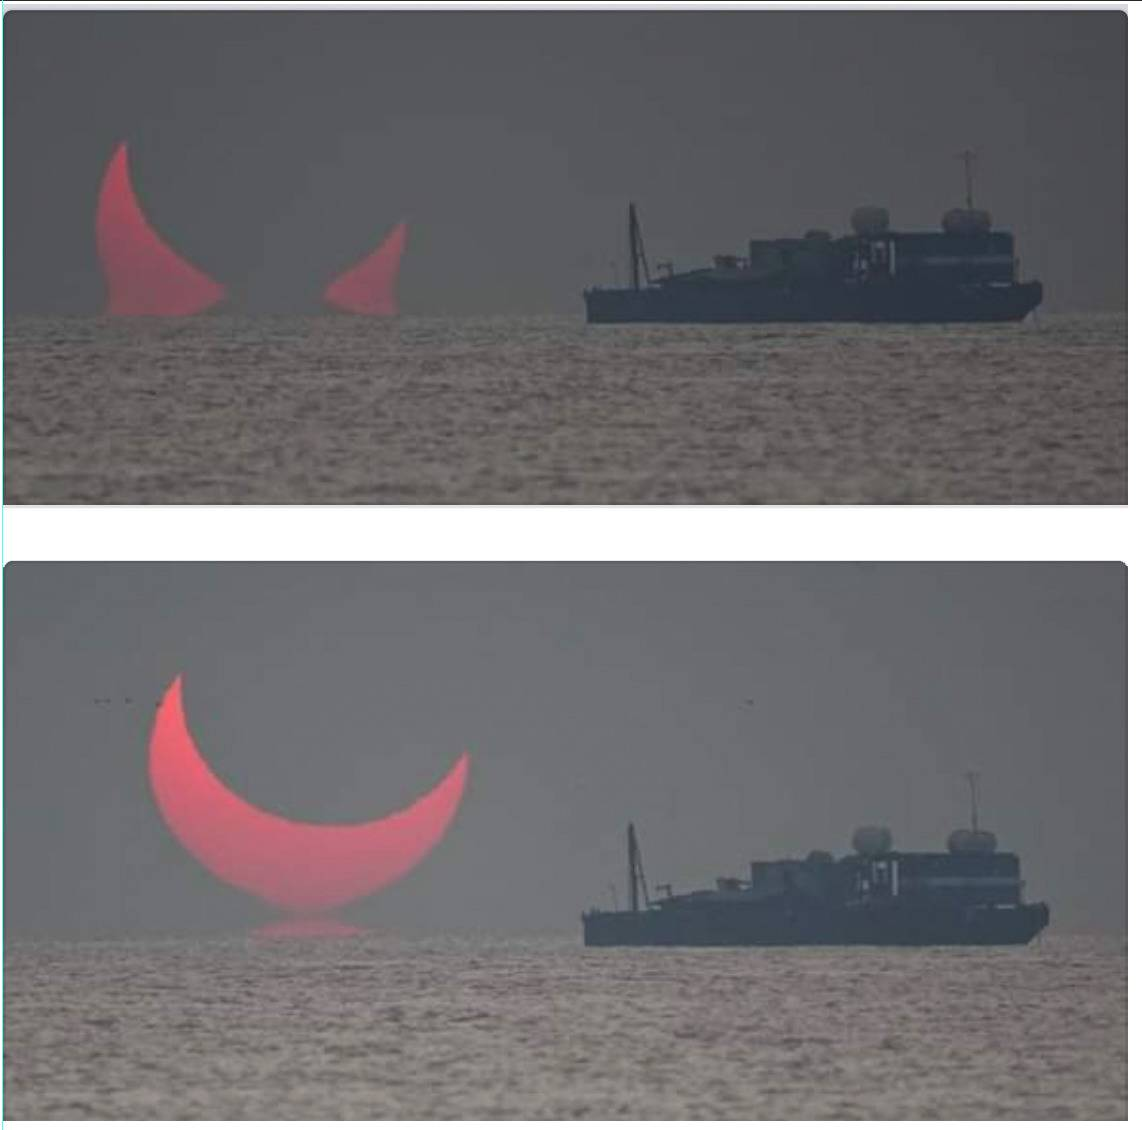 partial solar eclipse captured at sunset